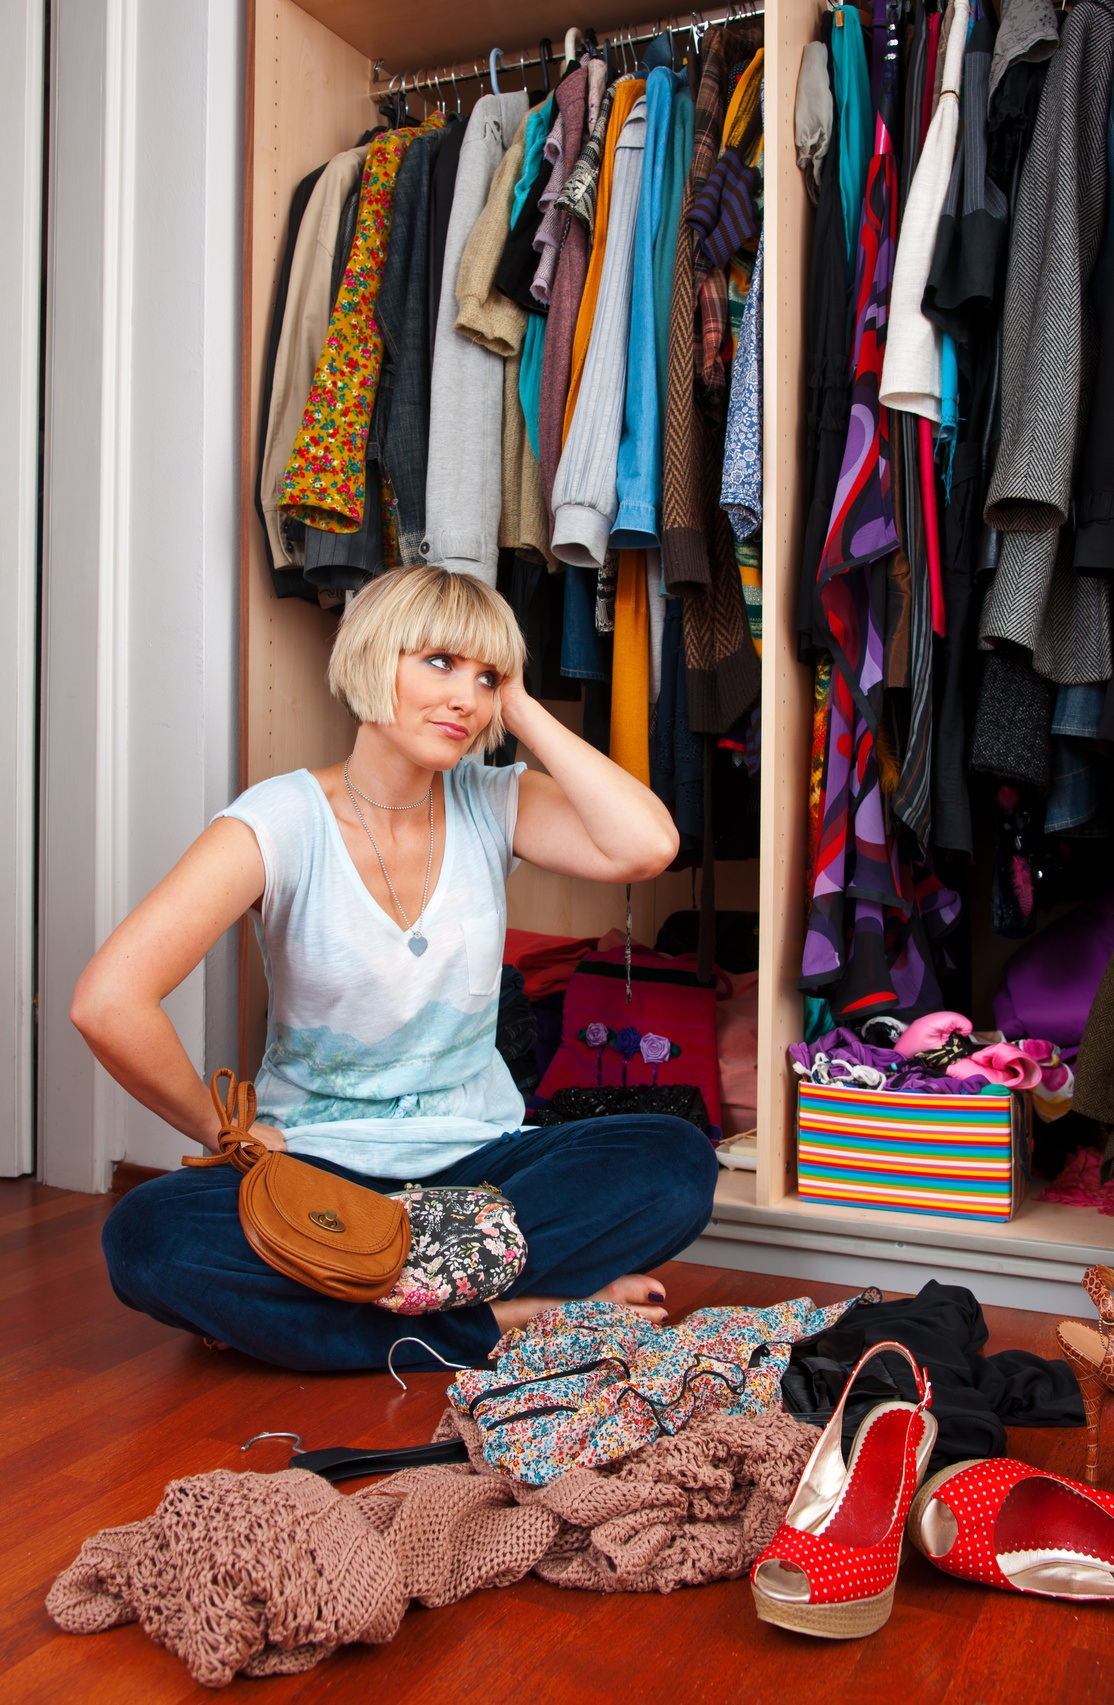 woman in front of full closet